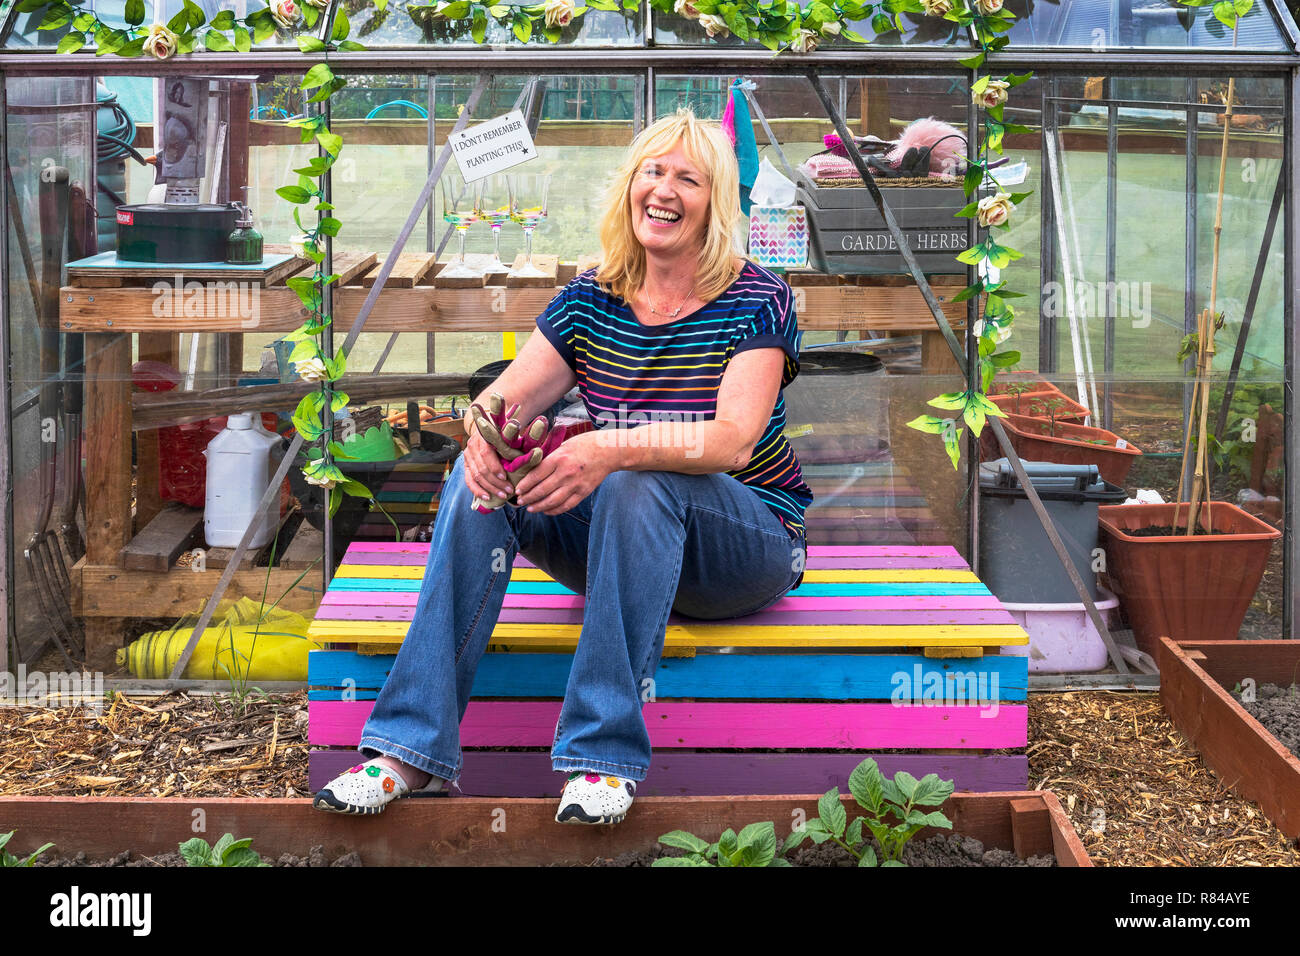 Image of PEGGY ANNE CAMPBELL,  Plot 78, Eglinton Growers, Kilwinning - Stock Image